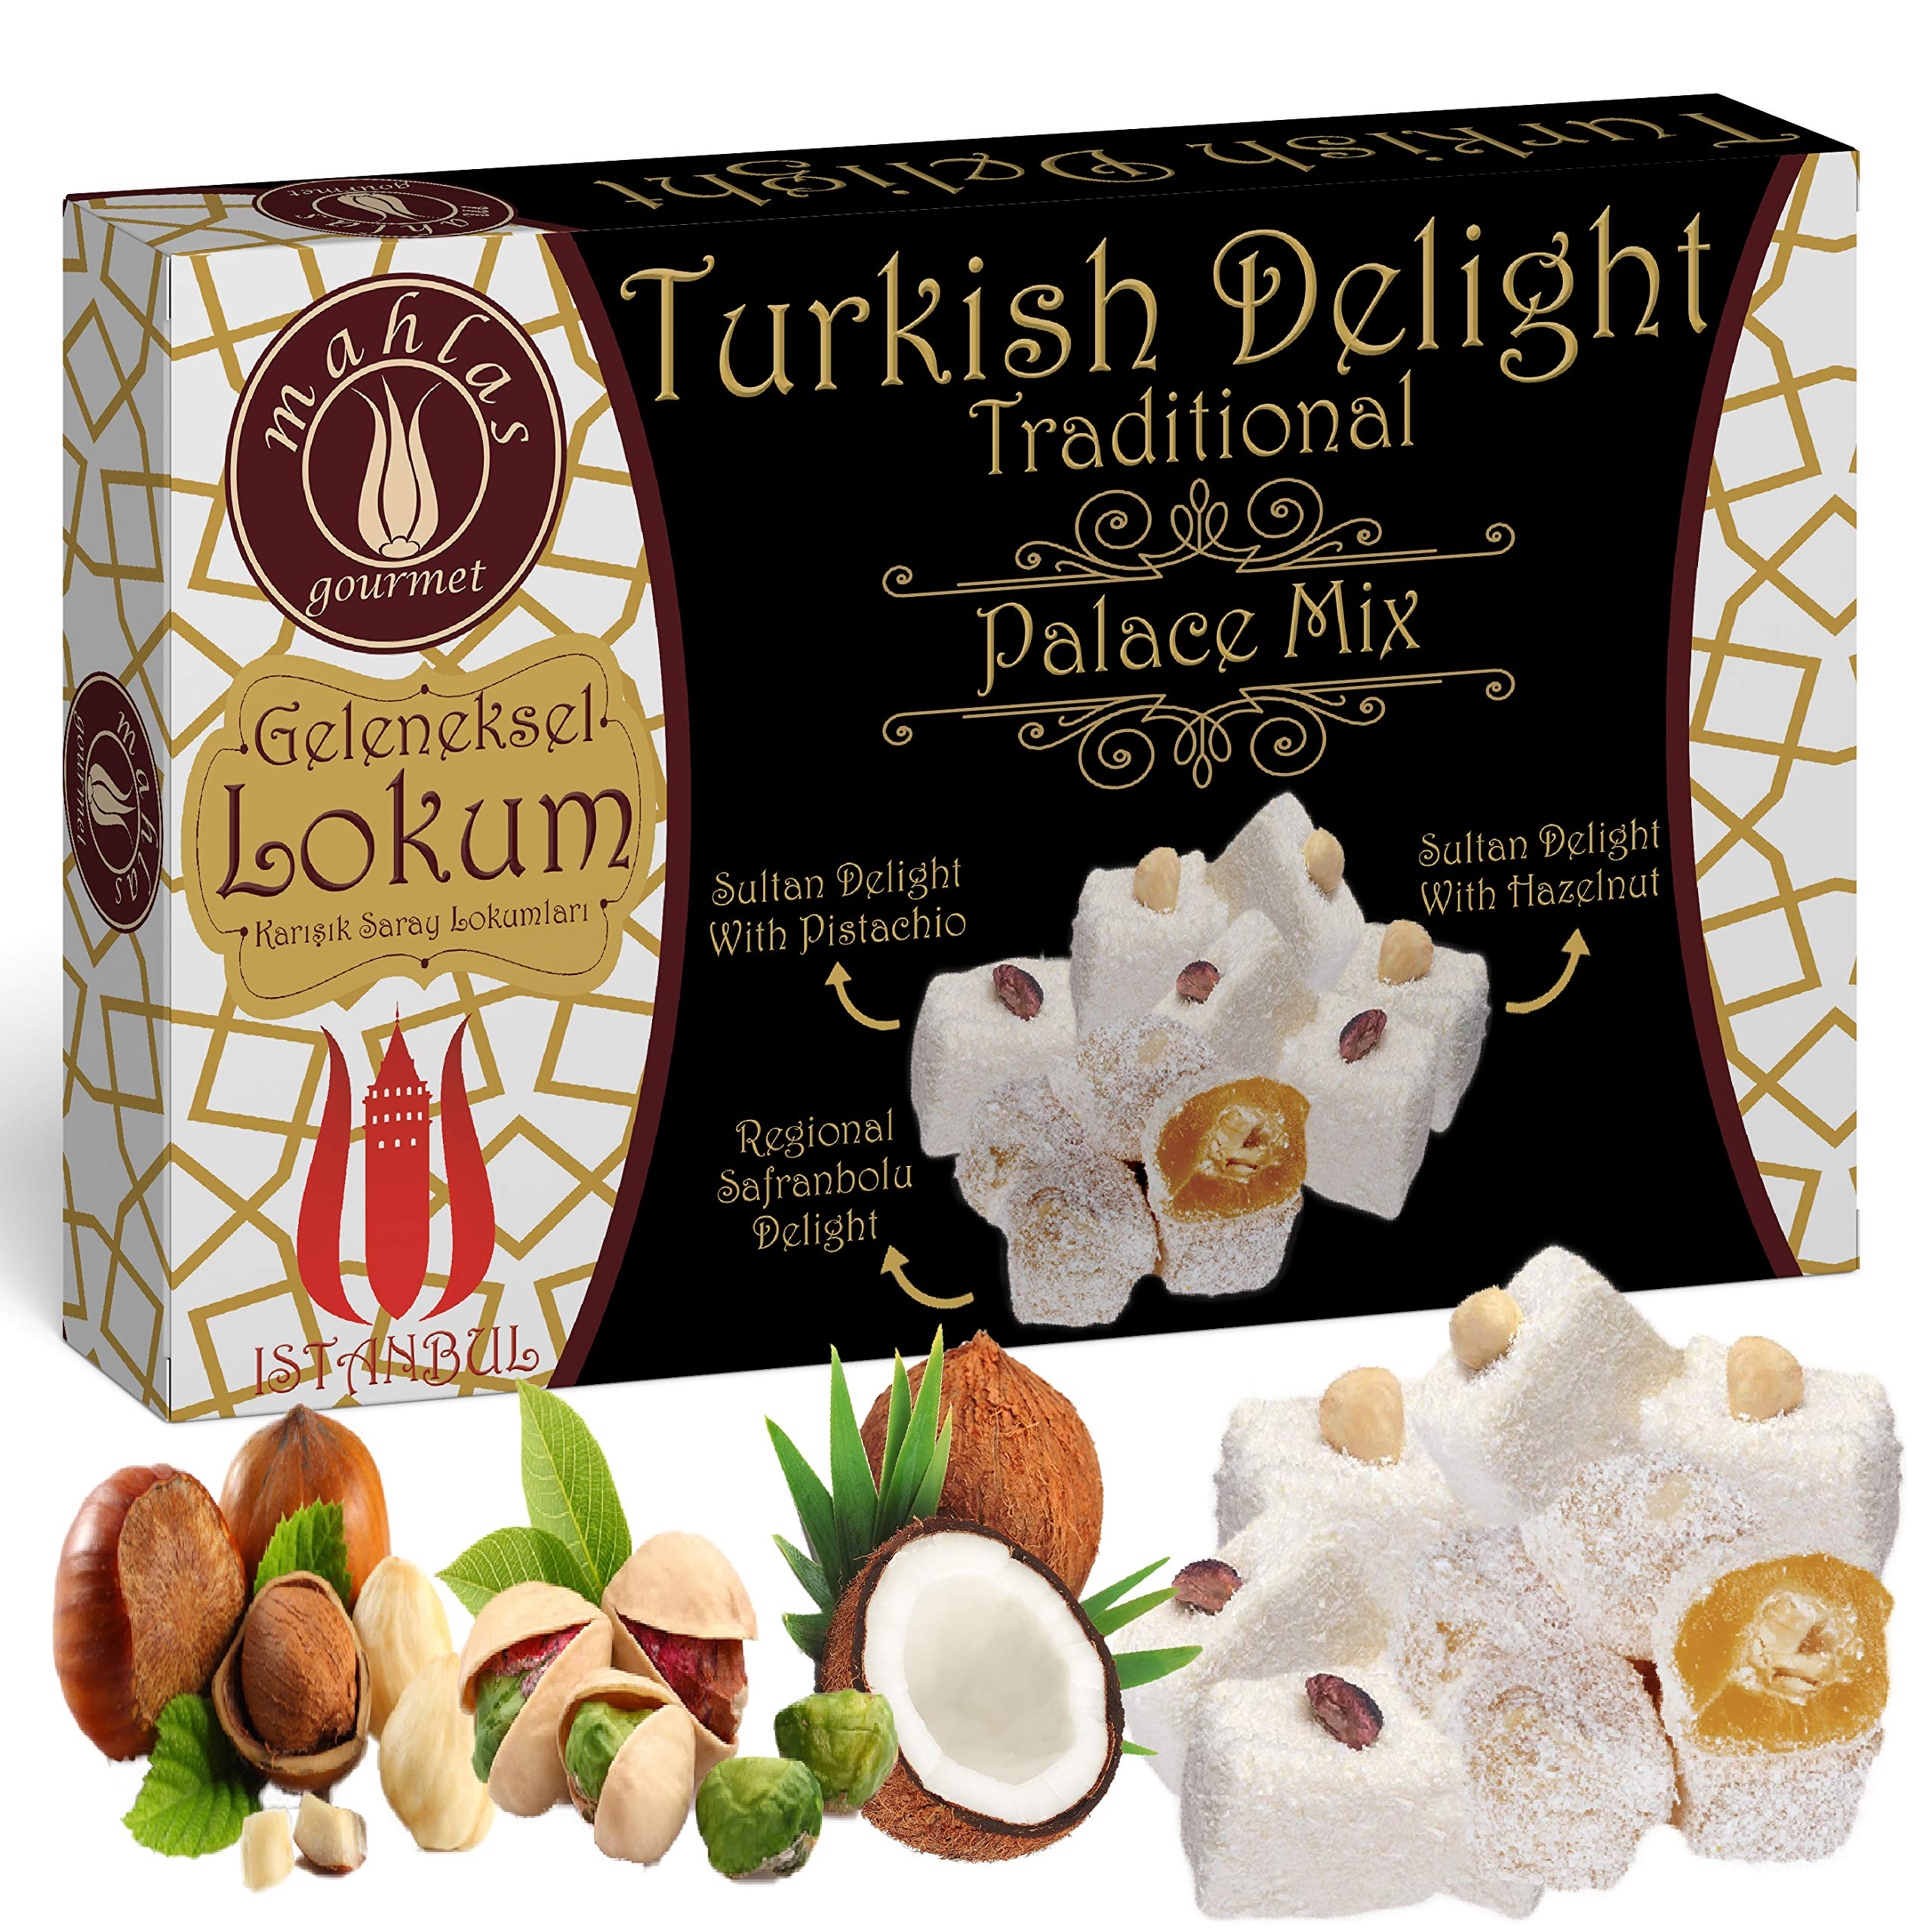 Mahlas Gourmet Turkish Delight - Traditional Sweet Halva From The 17th Century - Vegan Dessert With Pistachio And Hazelnut